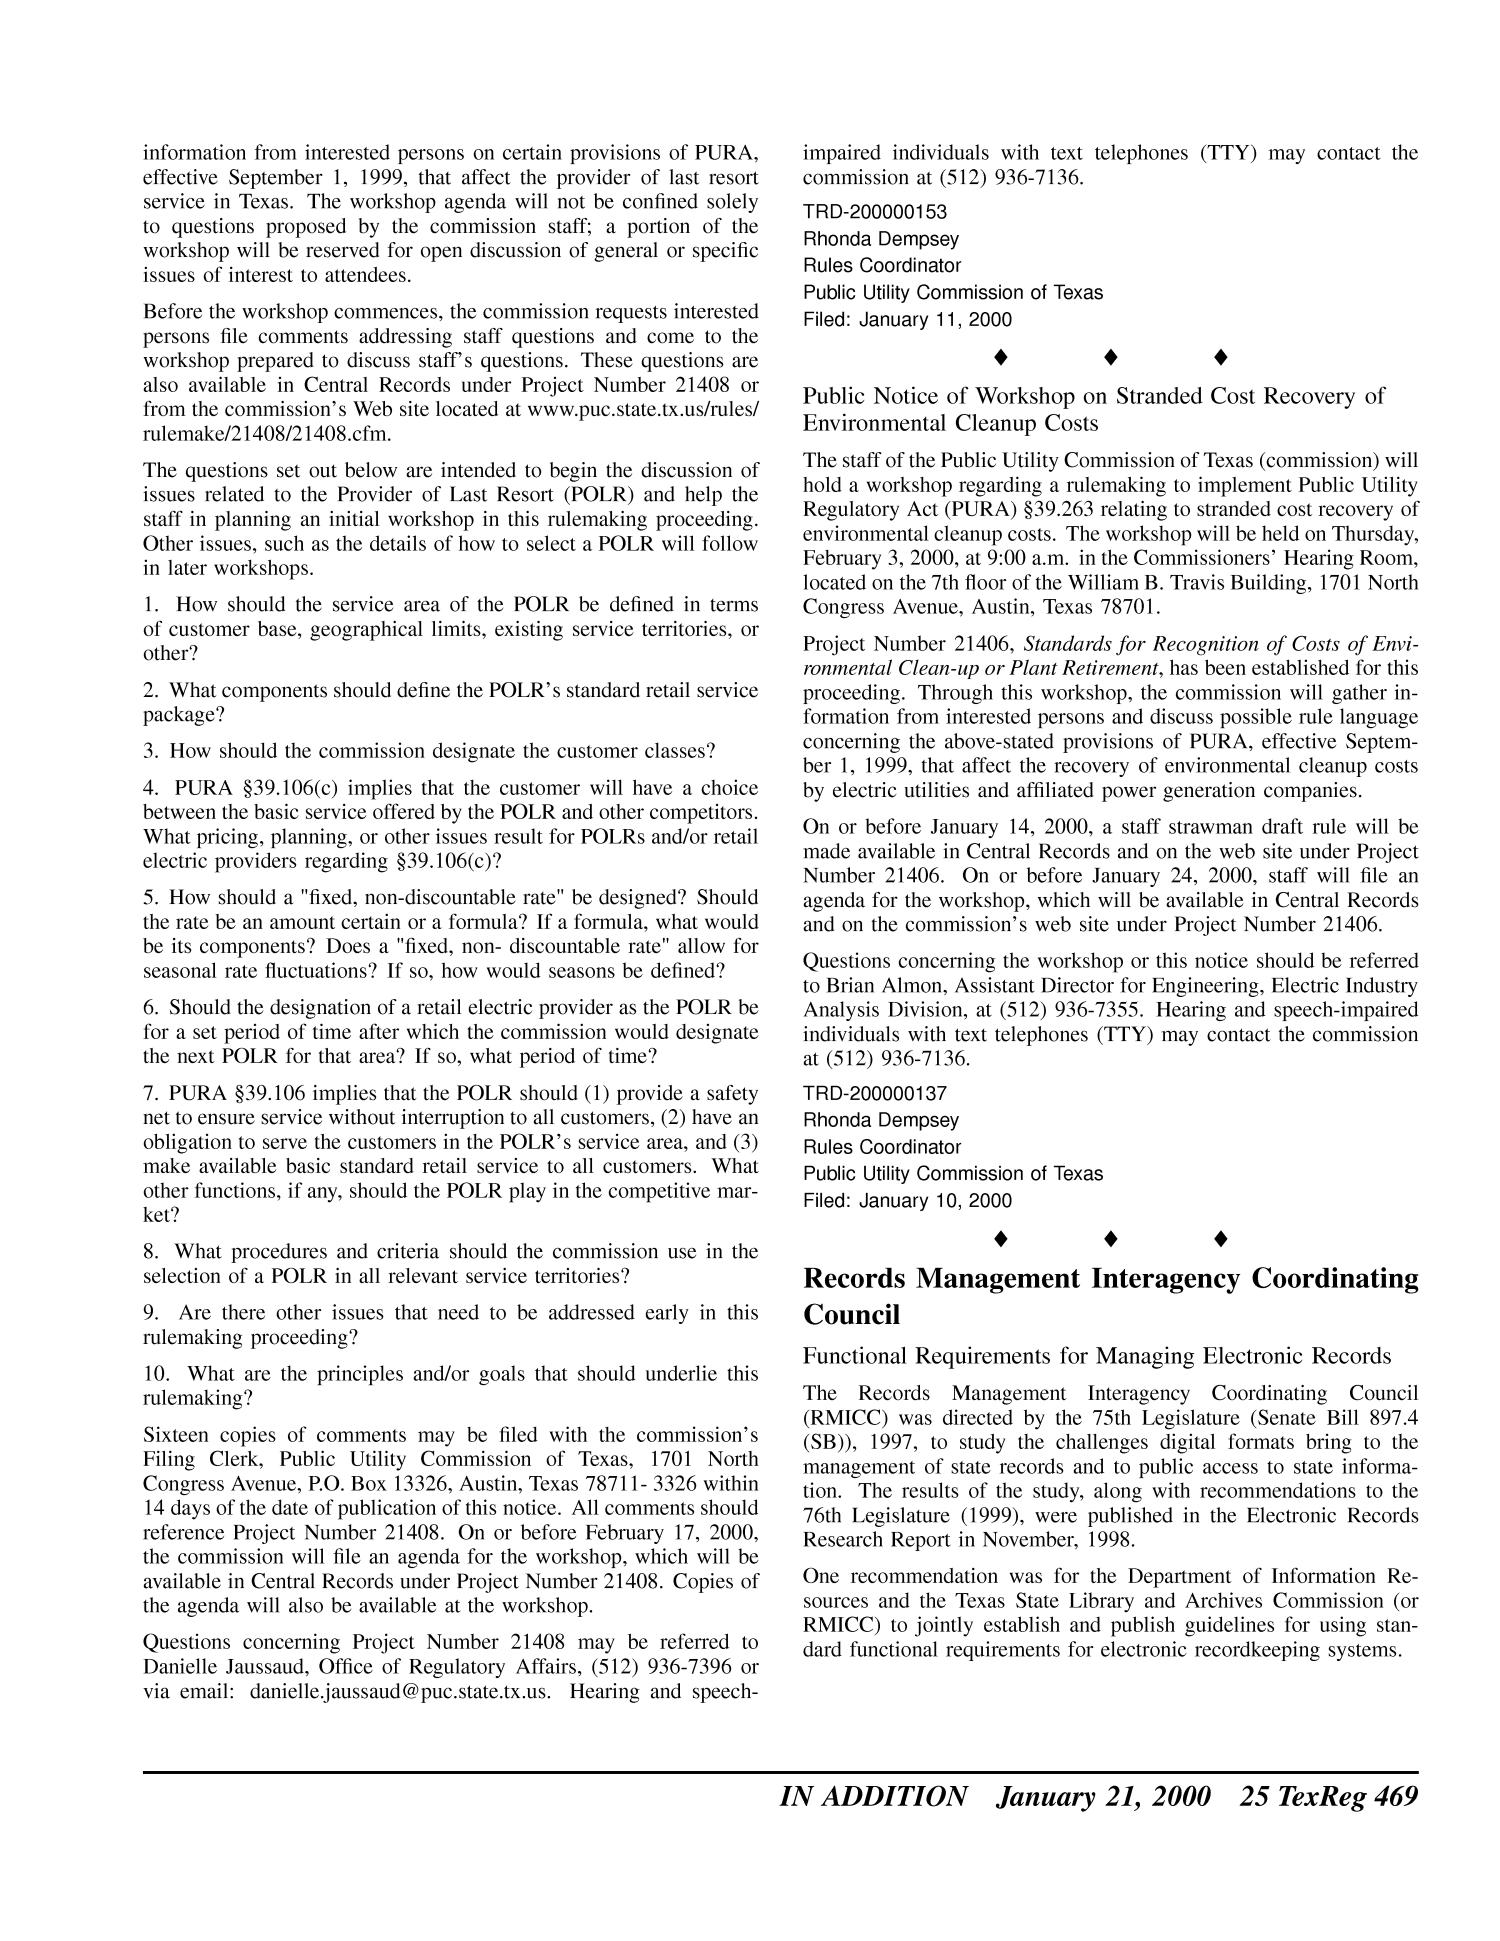 Texas Register, Volume 25, Number 3, Pages 327-475, January